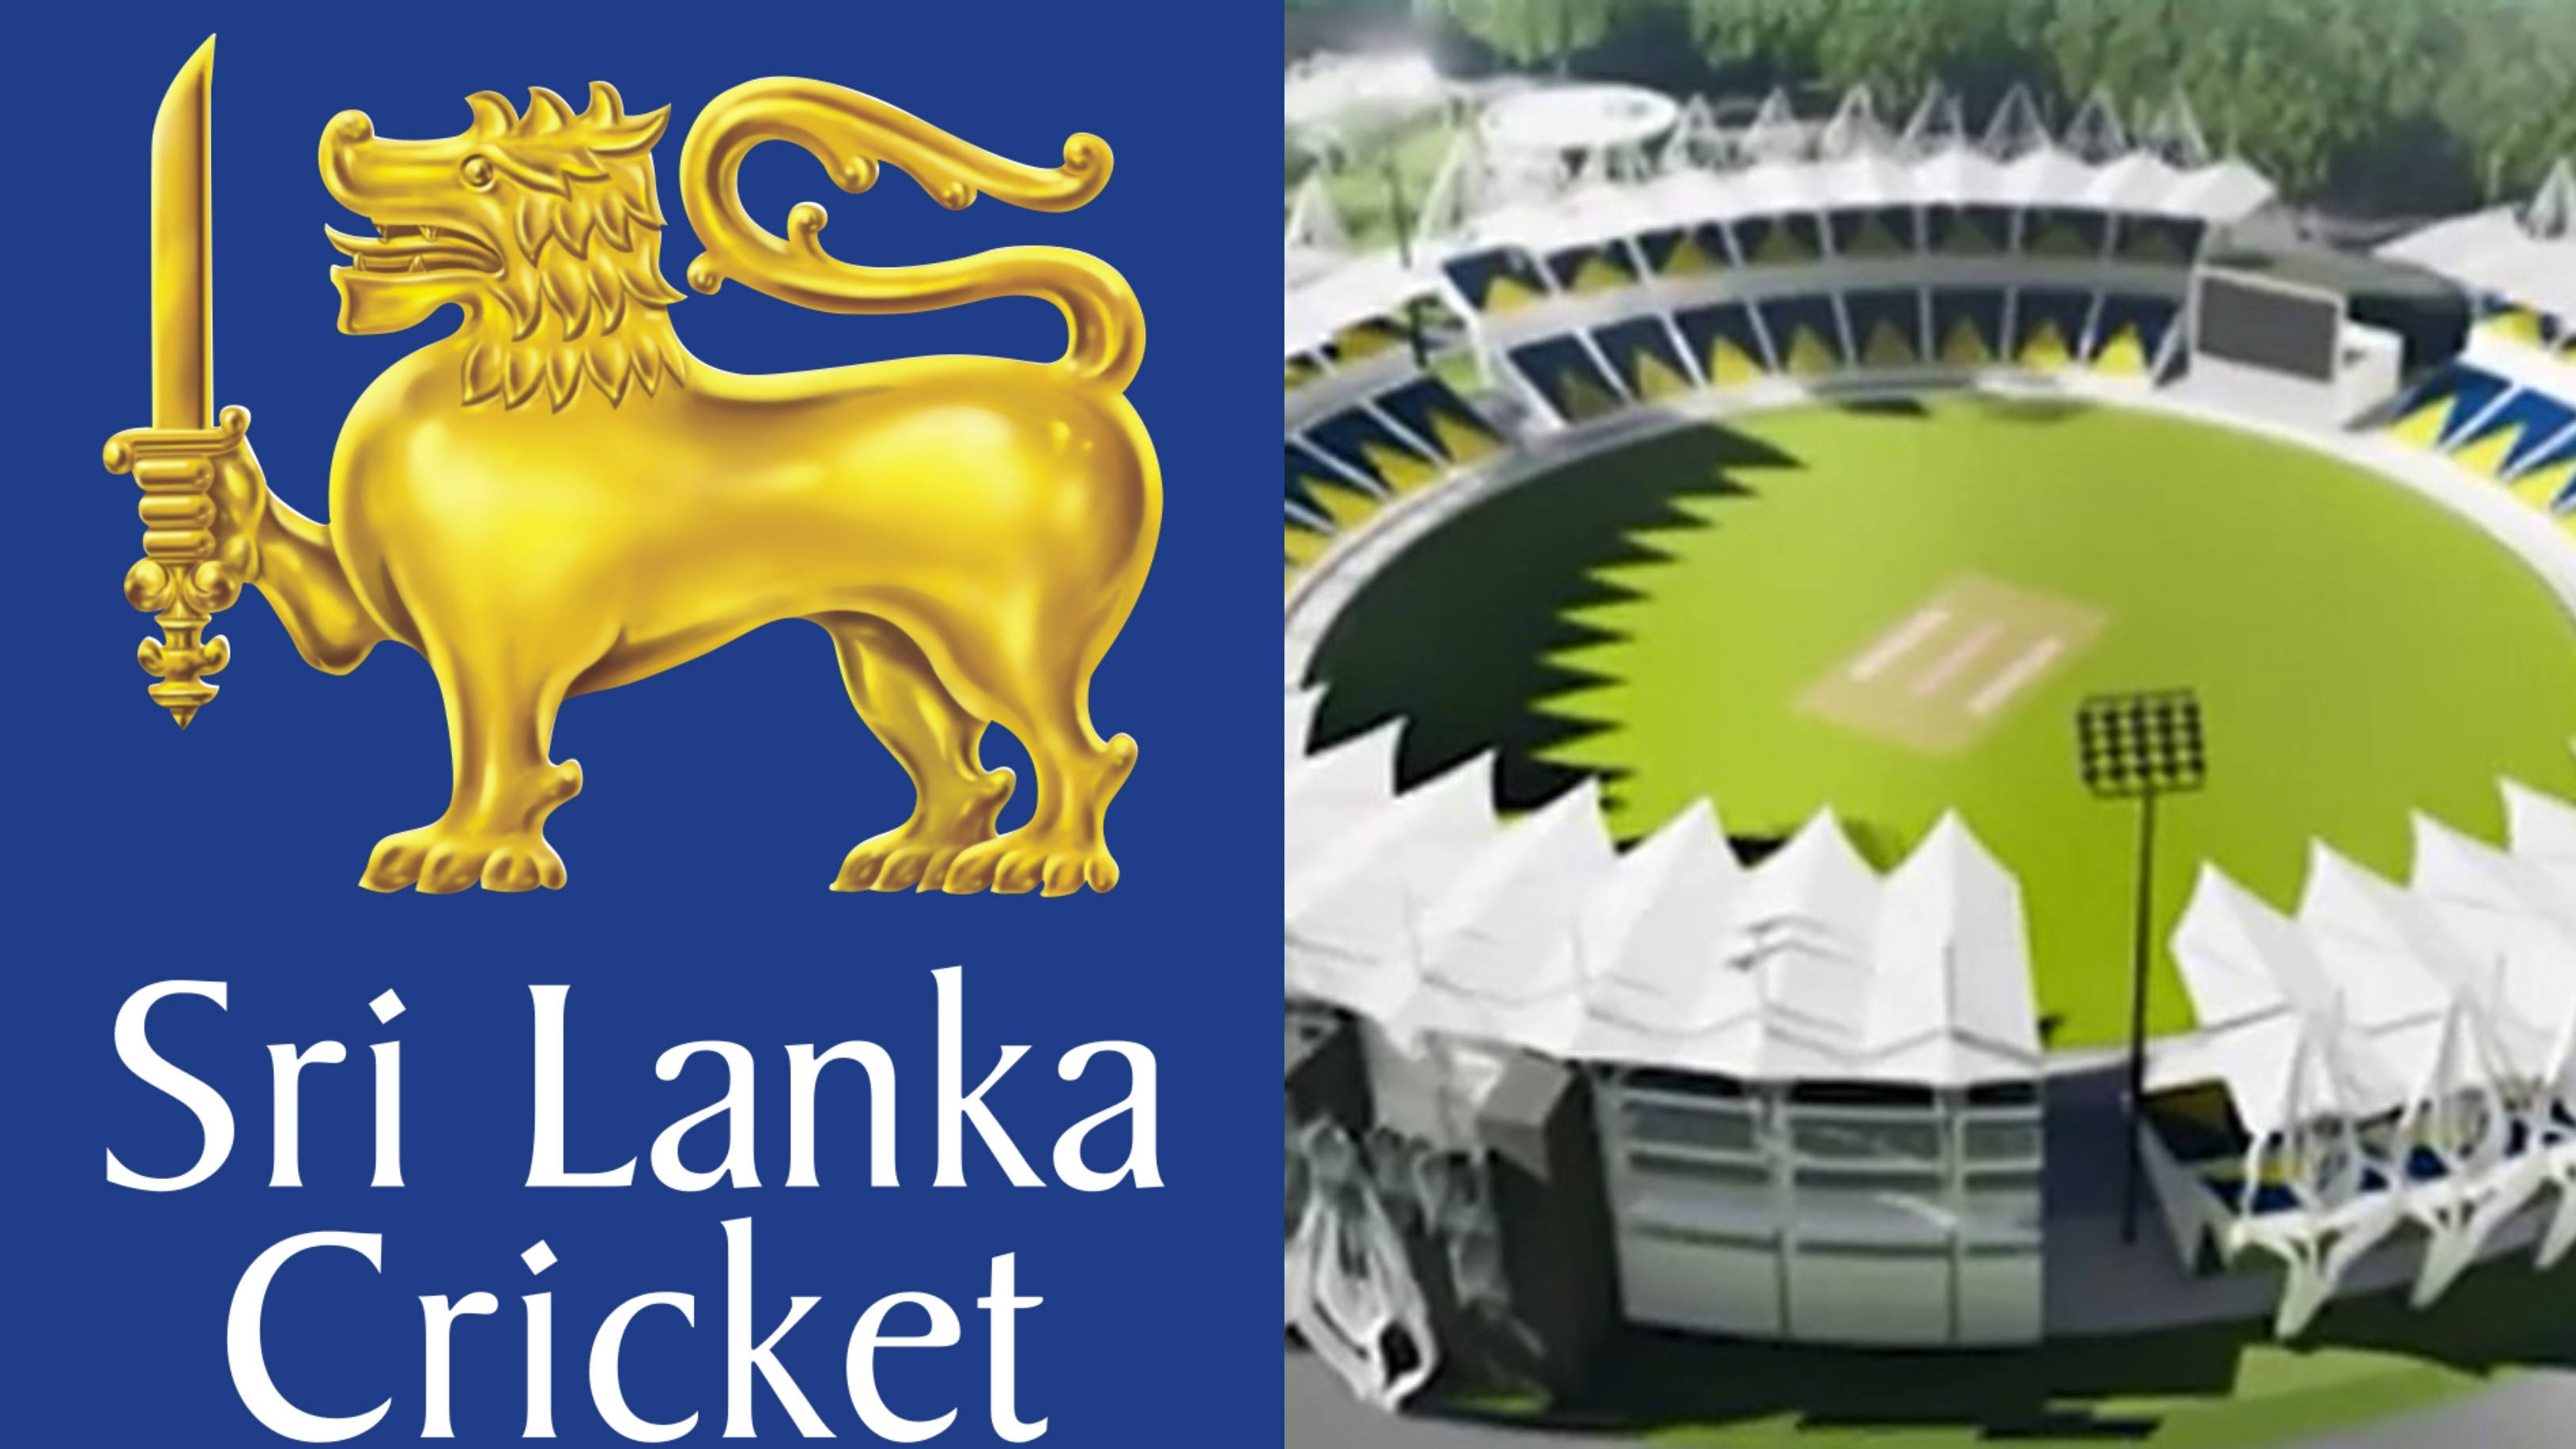 Sri Lanka Govt suspends project to build a new cricket stadium in Homagama